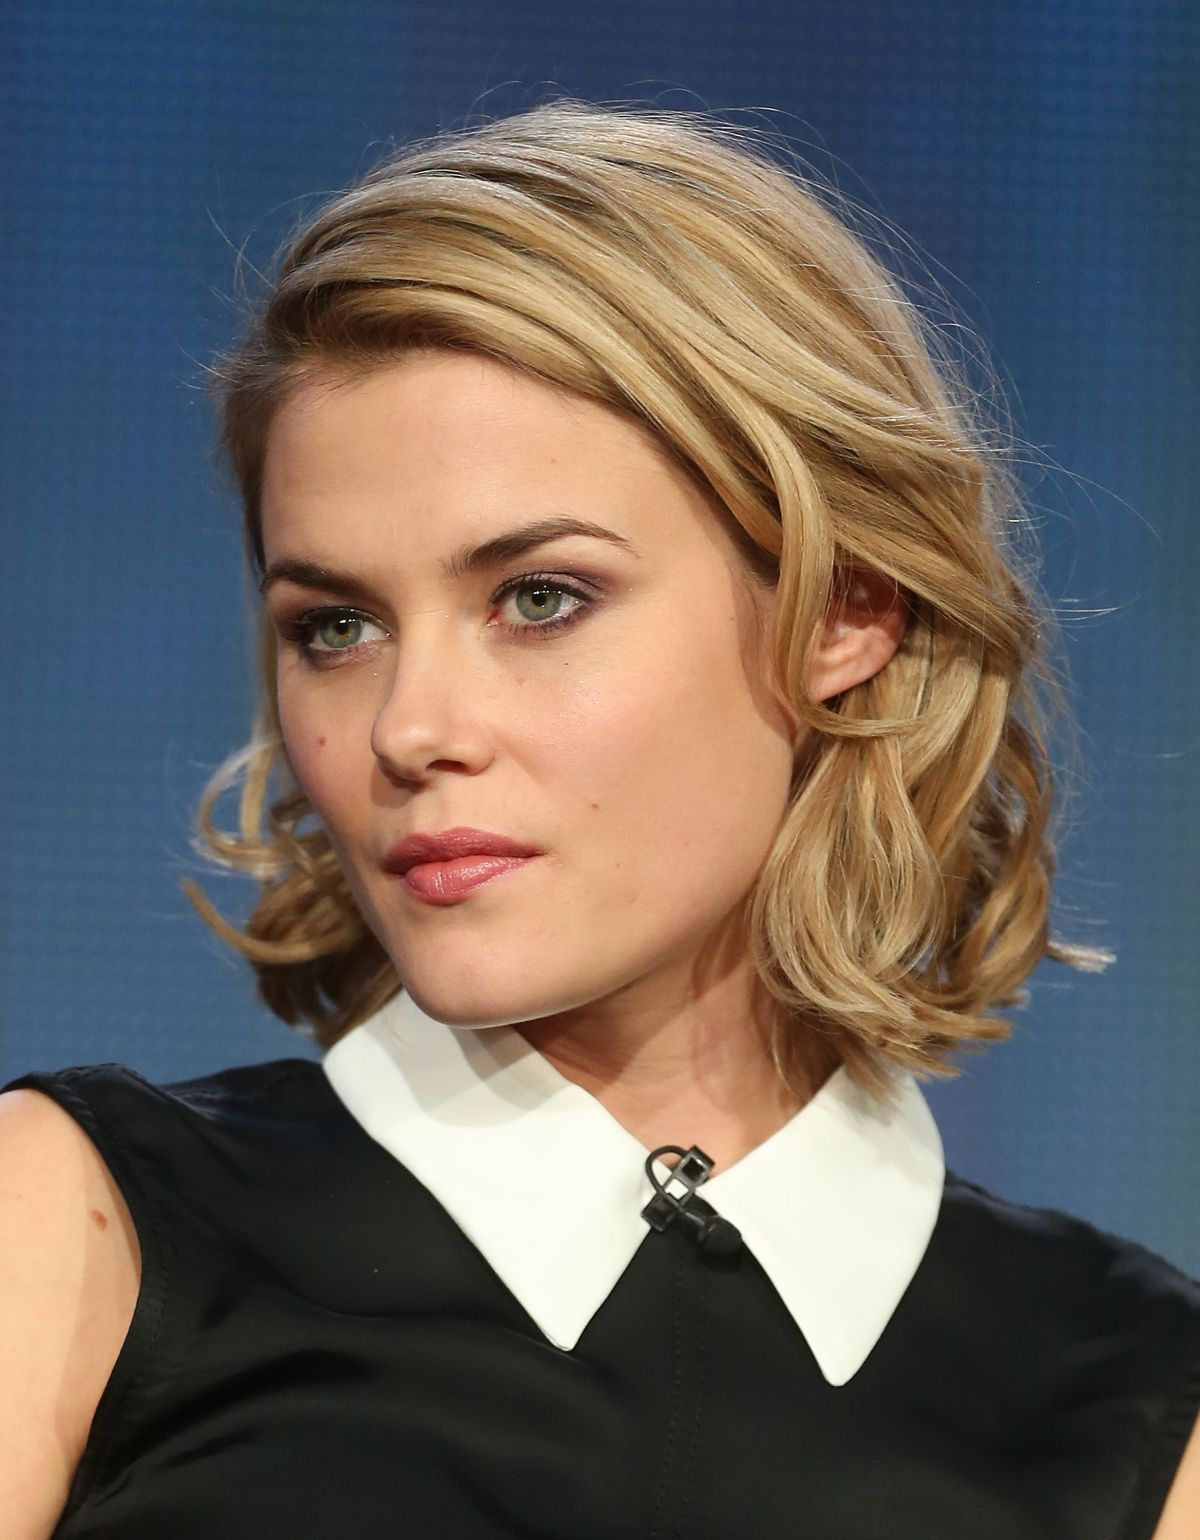 rachael-taylor-at-nbc-and-universal-2014-tca-winter-press-tour-in-pasadena_1.jpg